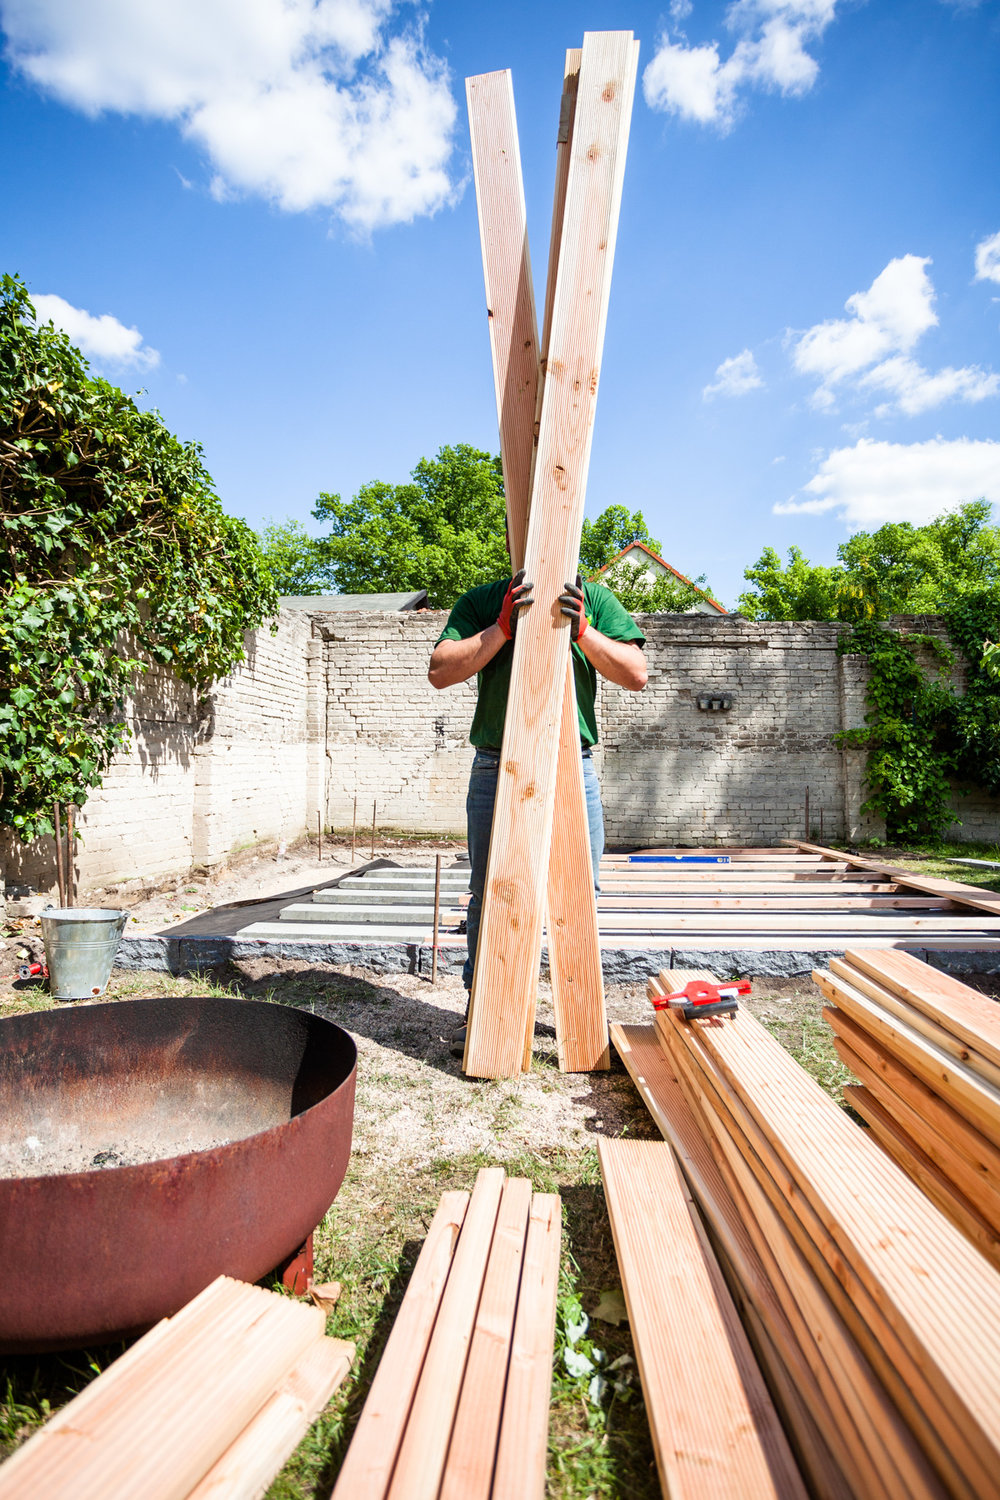 ©TomWoollard_OBI_Berlin-editorial-lifestyle-garden-construction-worker-holding-wooden-timber-planks.jpg